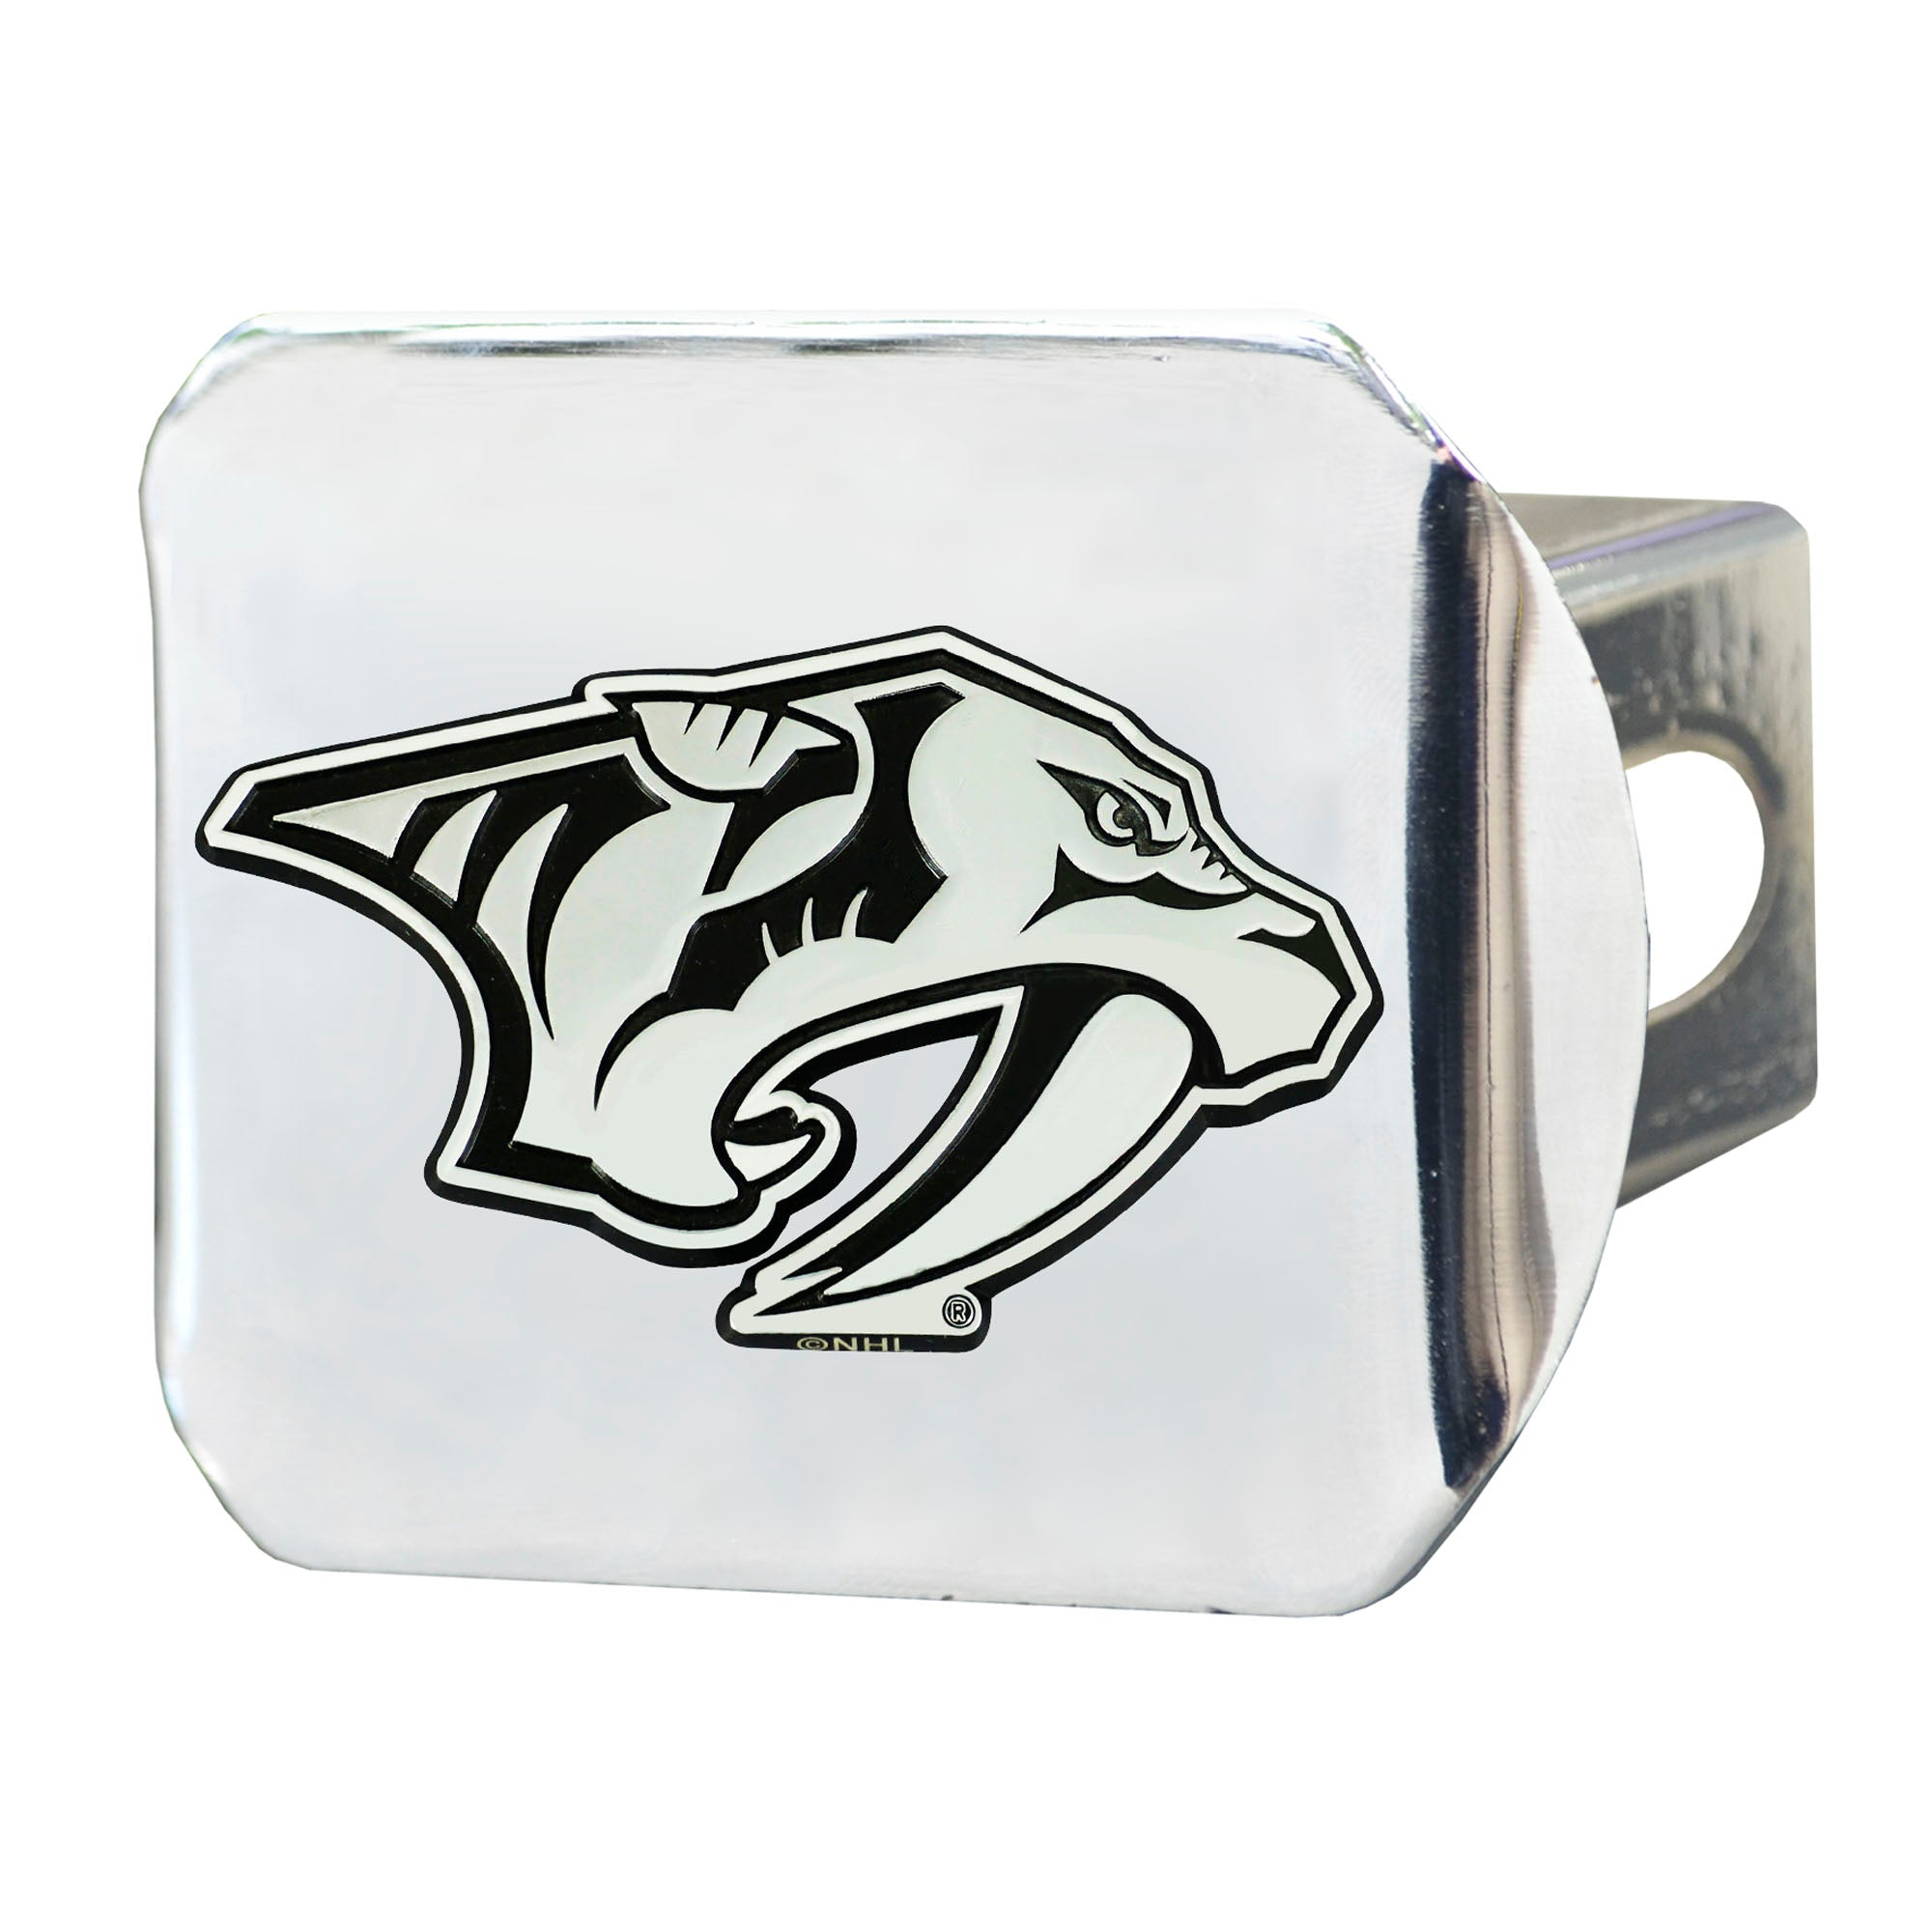 "NHL - Nashville Predators Hitch Cover - Chrome on Chrome 3.4""x4"""